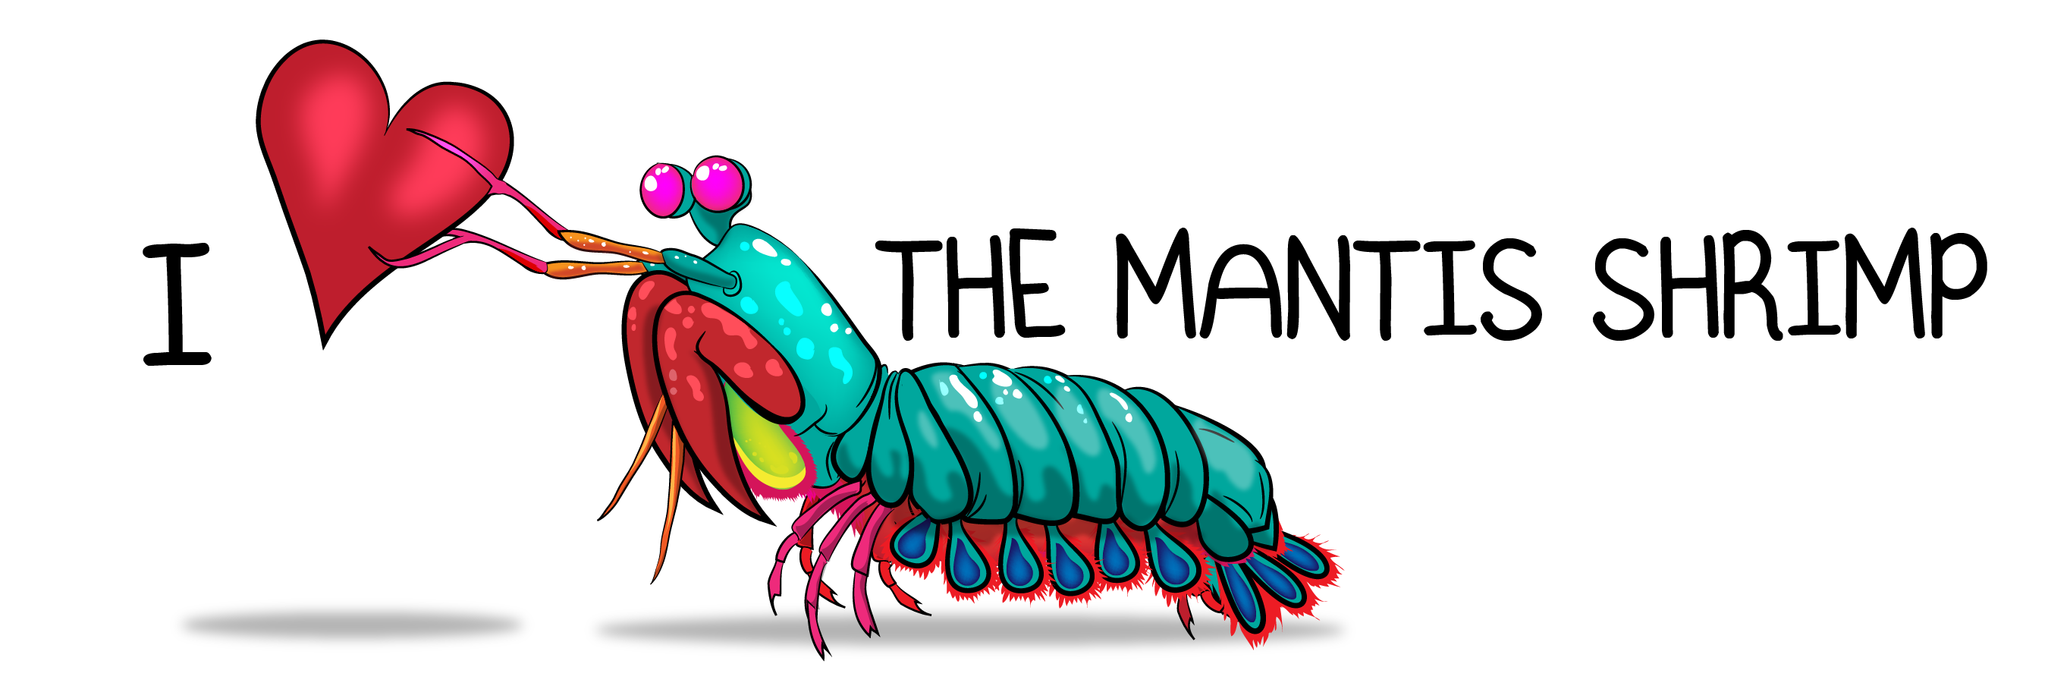 Mantis Shrimp clipart #15, Download drawings